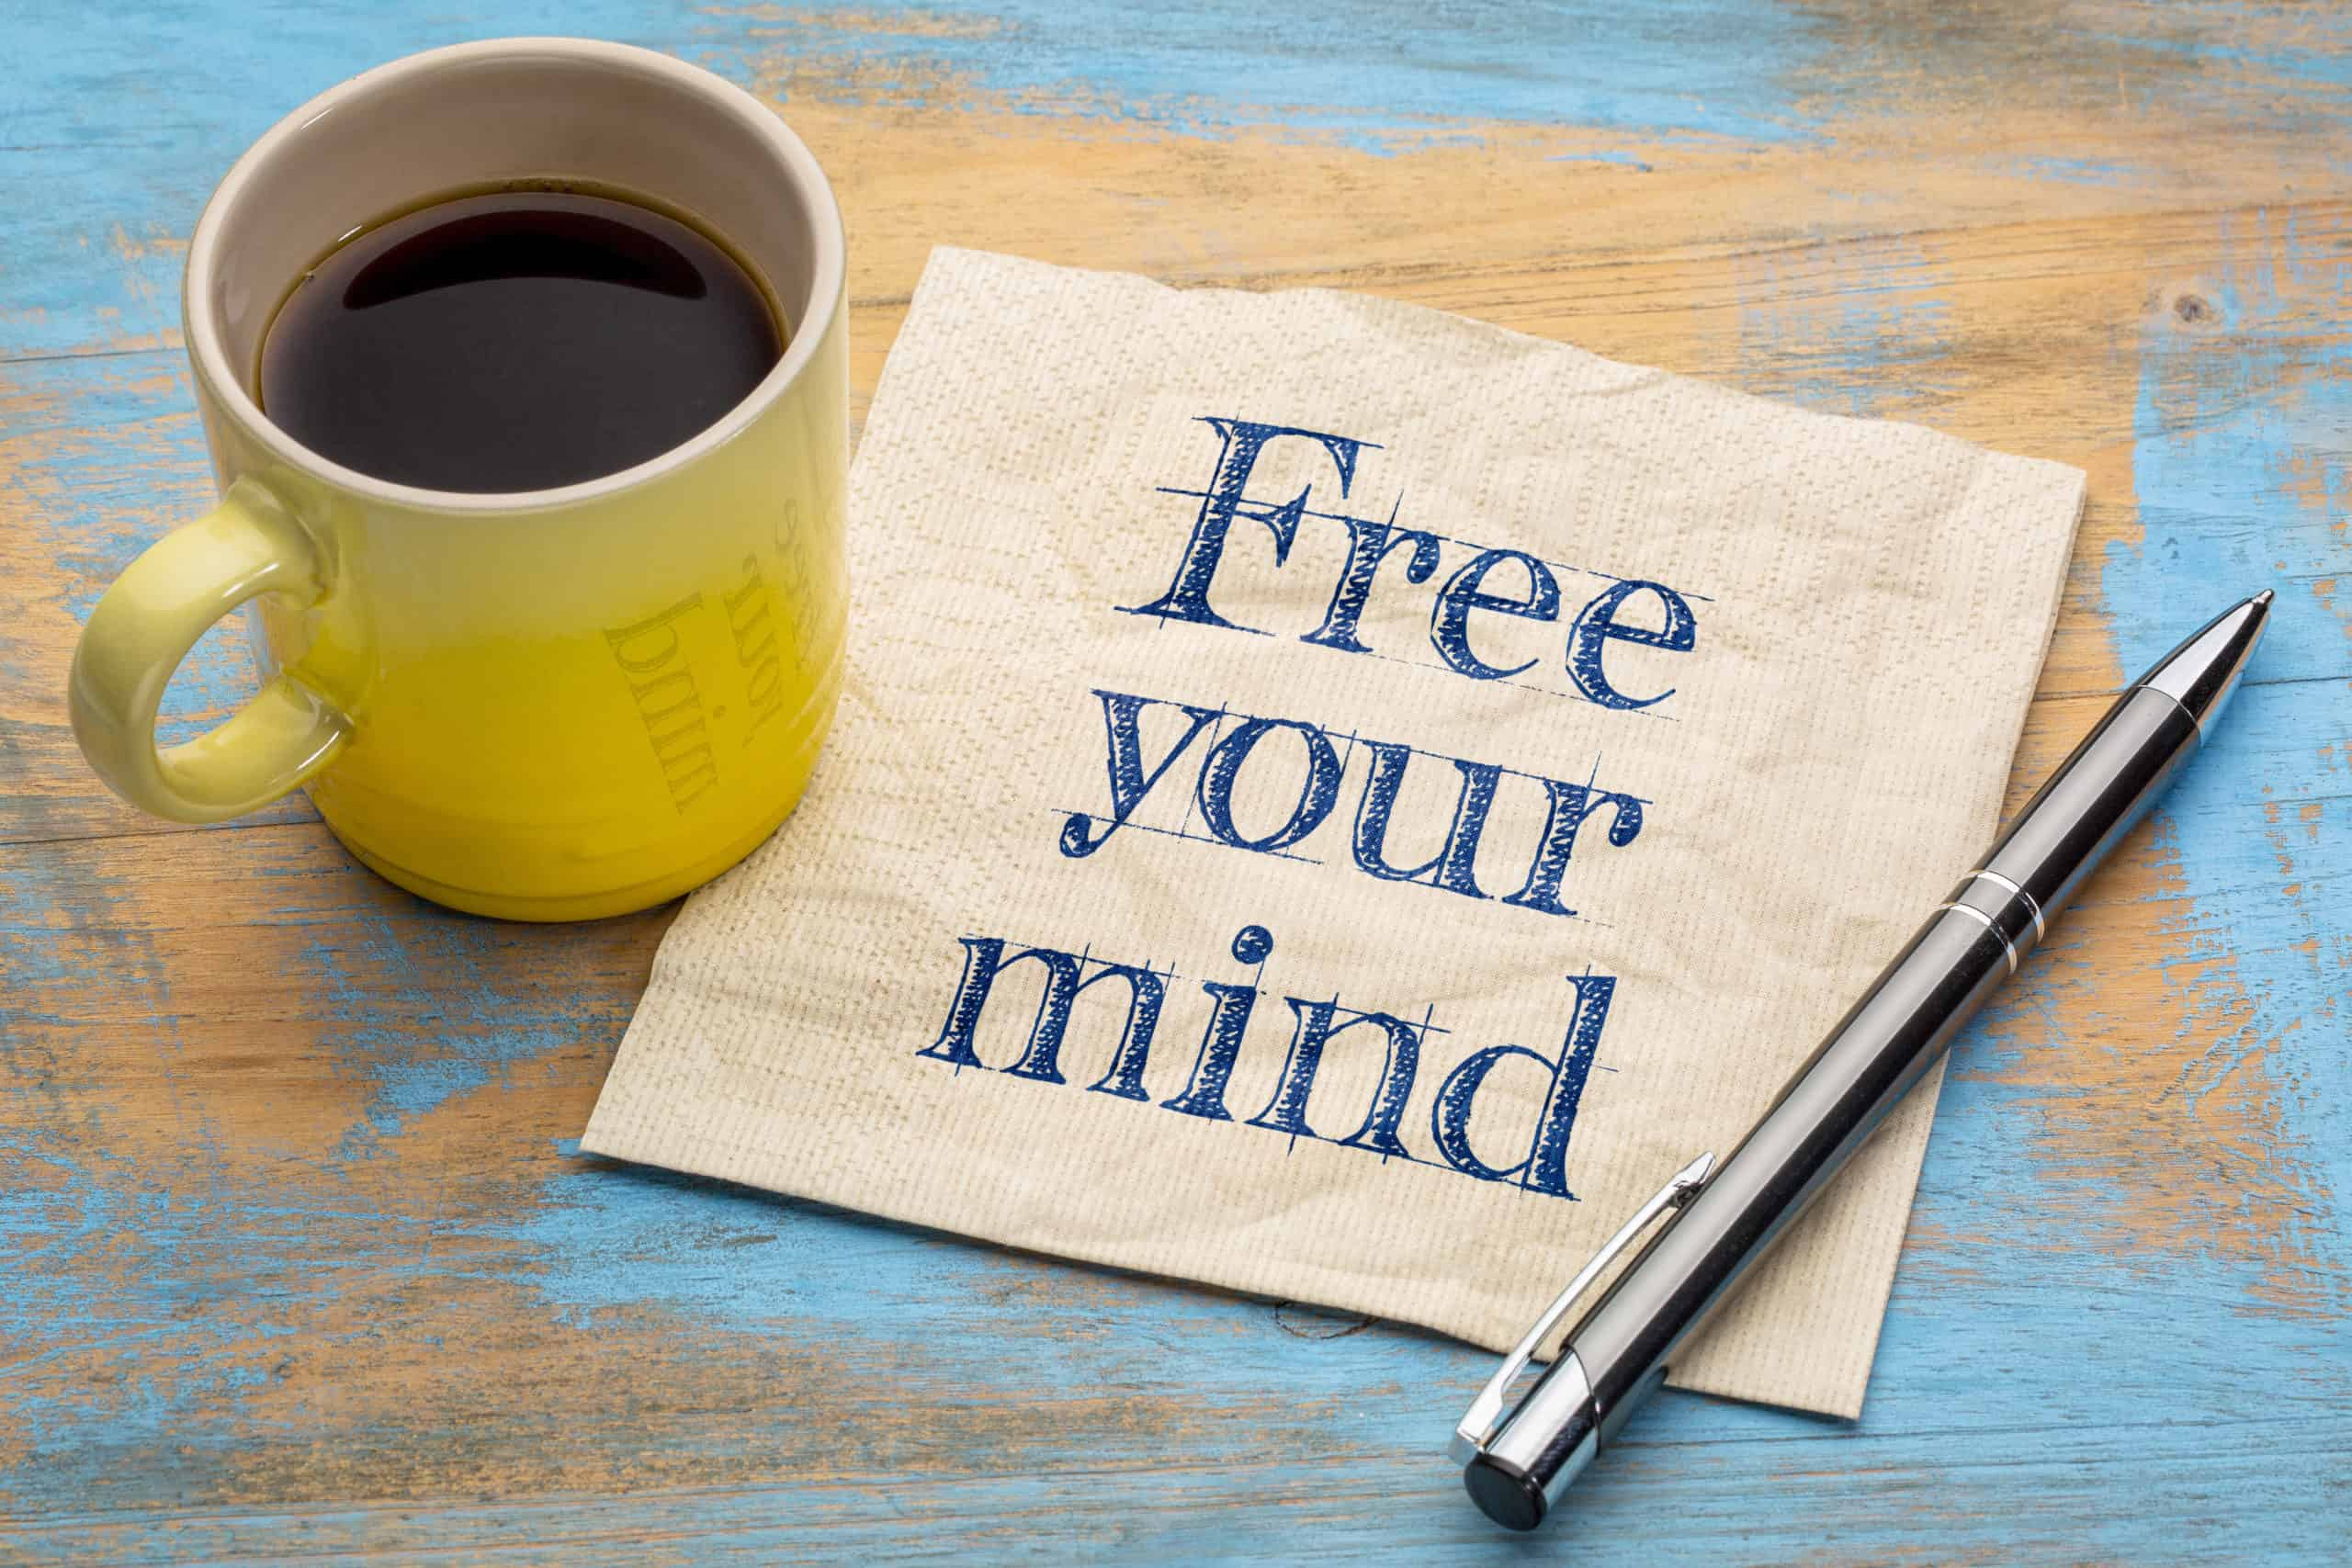 free your mind reminder note - handwriting on a napkin with a cup of coffee